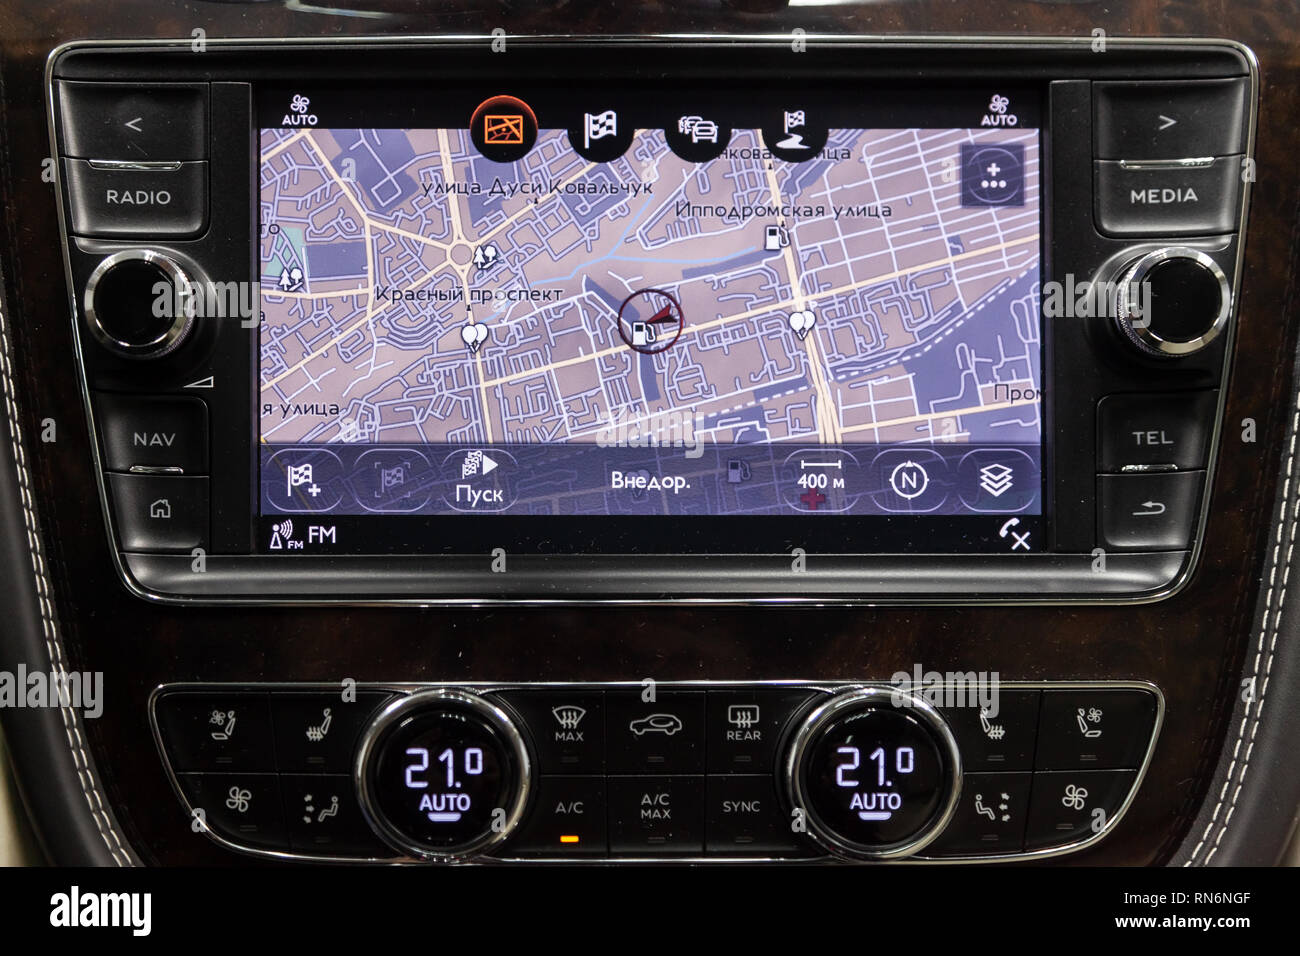 Novosibirsk, Russia - 08.01.18: Interior view with multimedia system navigation and emblem of luxury very expensive new black Bentley Bentayga car sta - Stock Image